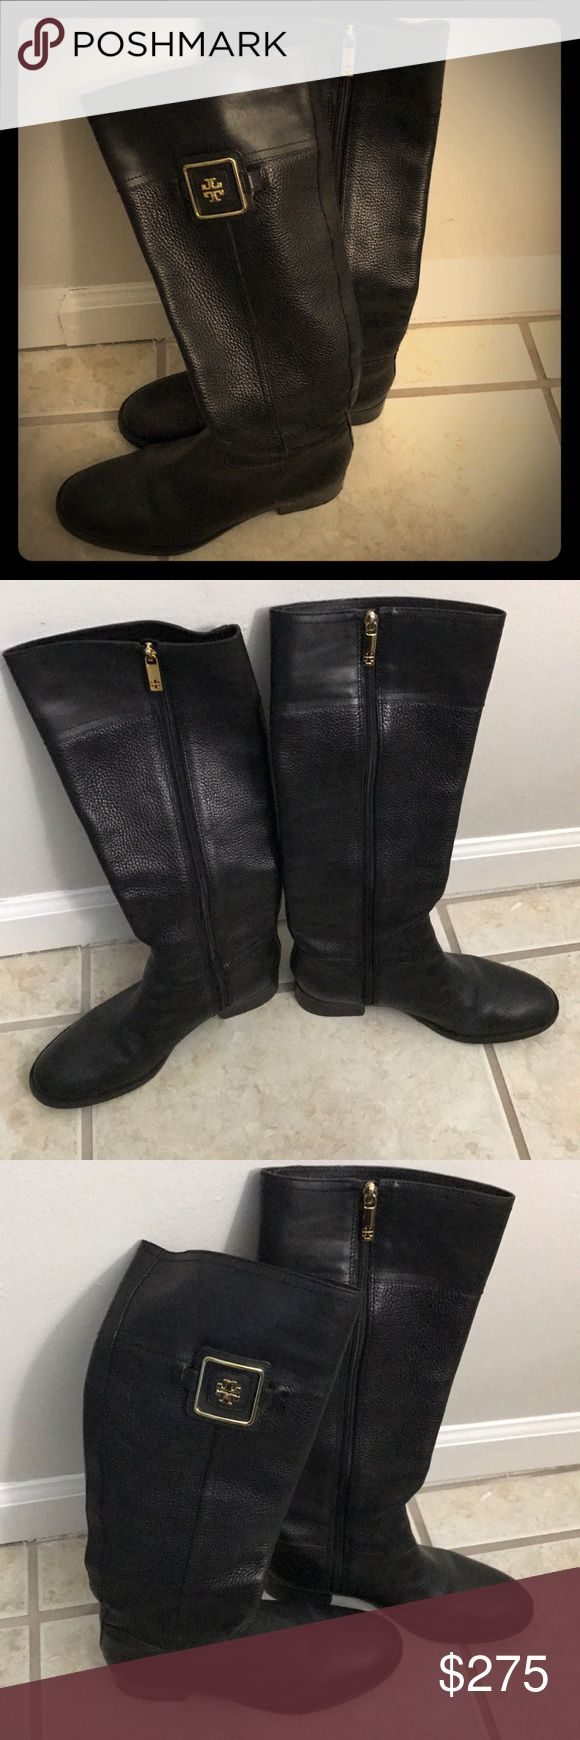 Tory Burch Black pebble leather boots size 9 Tory Burch Black pebble leather boots size 9. Beauty TB boots. Leather is so soft and comfortable - but made for slim calf to fully zip. TB signature hardware is gold. Inside of boot has TB signature interior Tory Burch Shoes